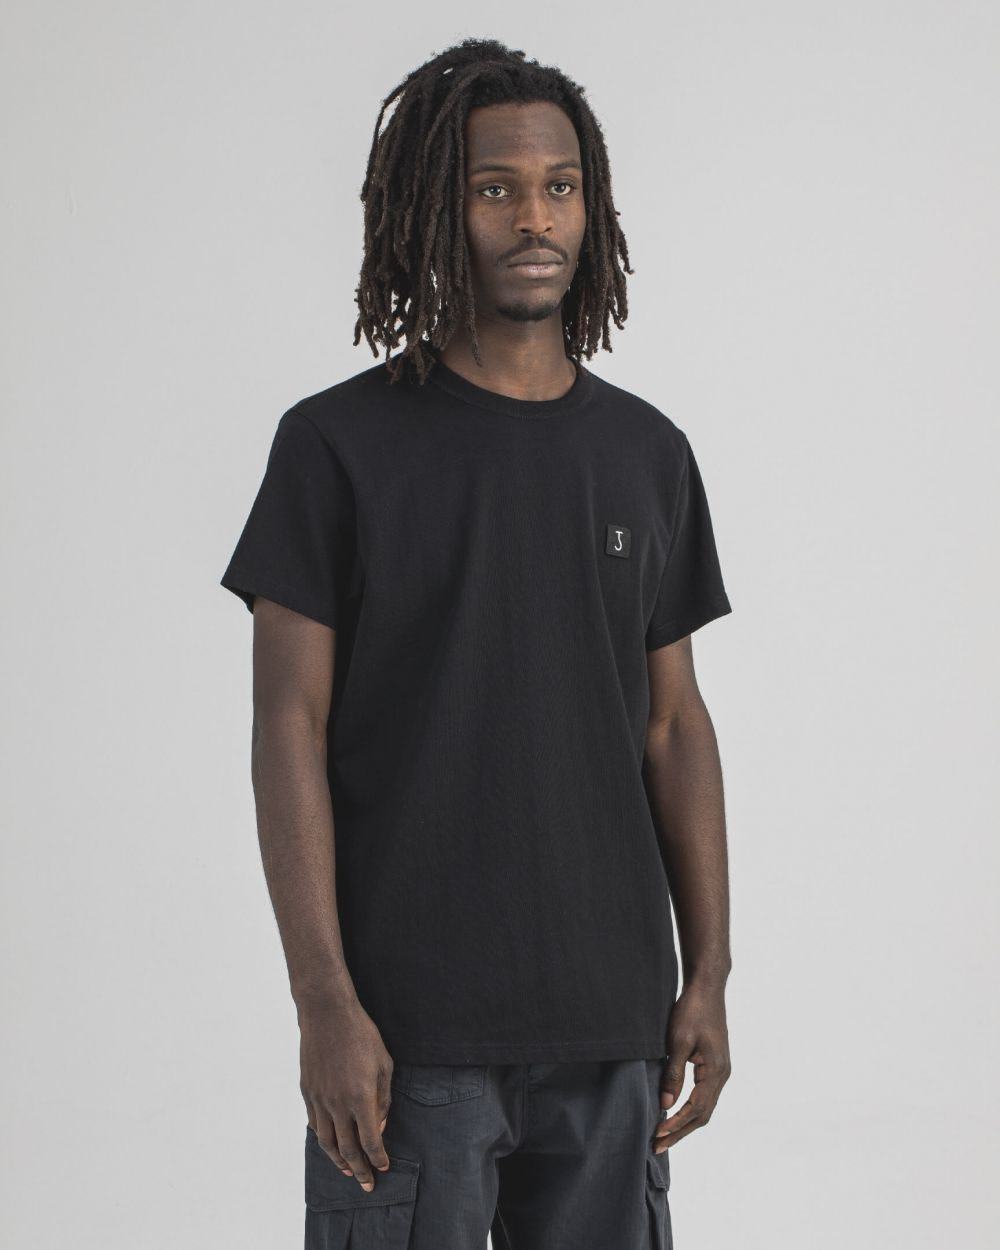 Army Tee s/s off black-1